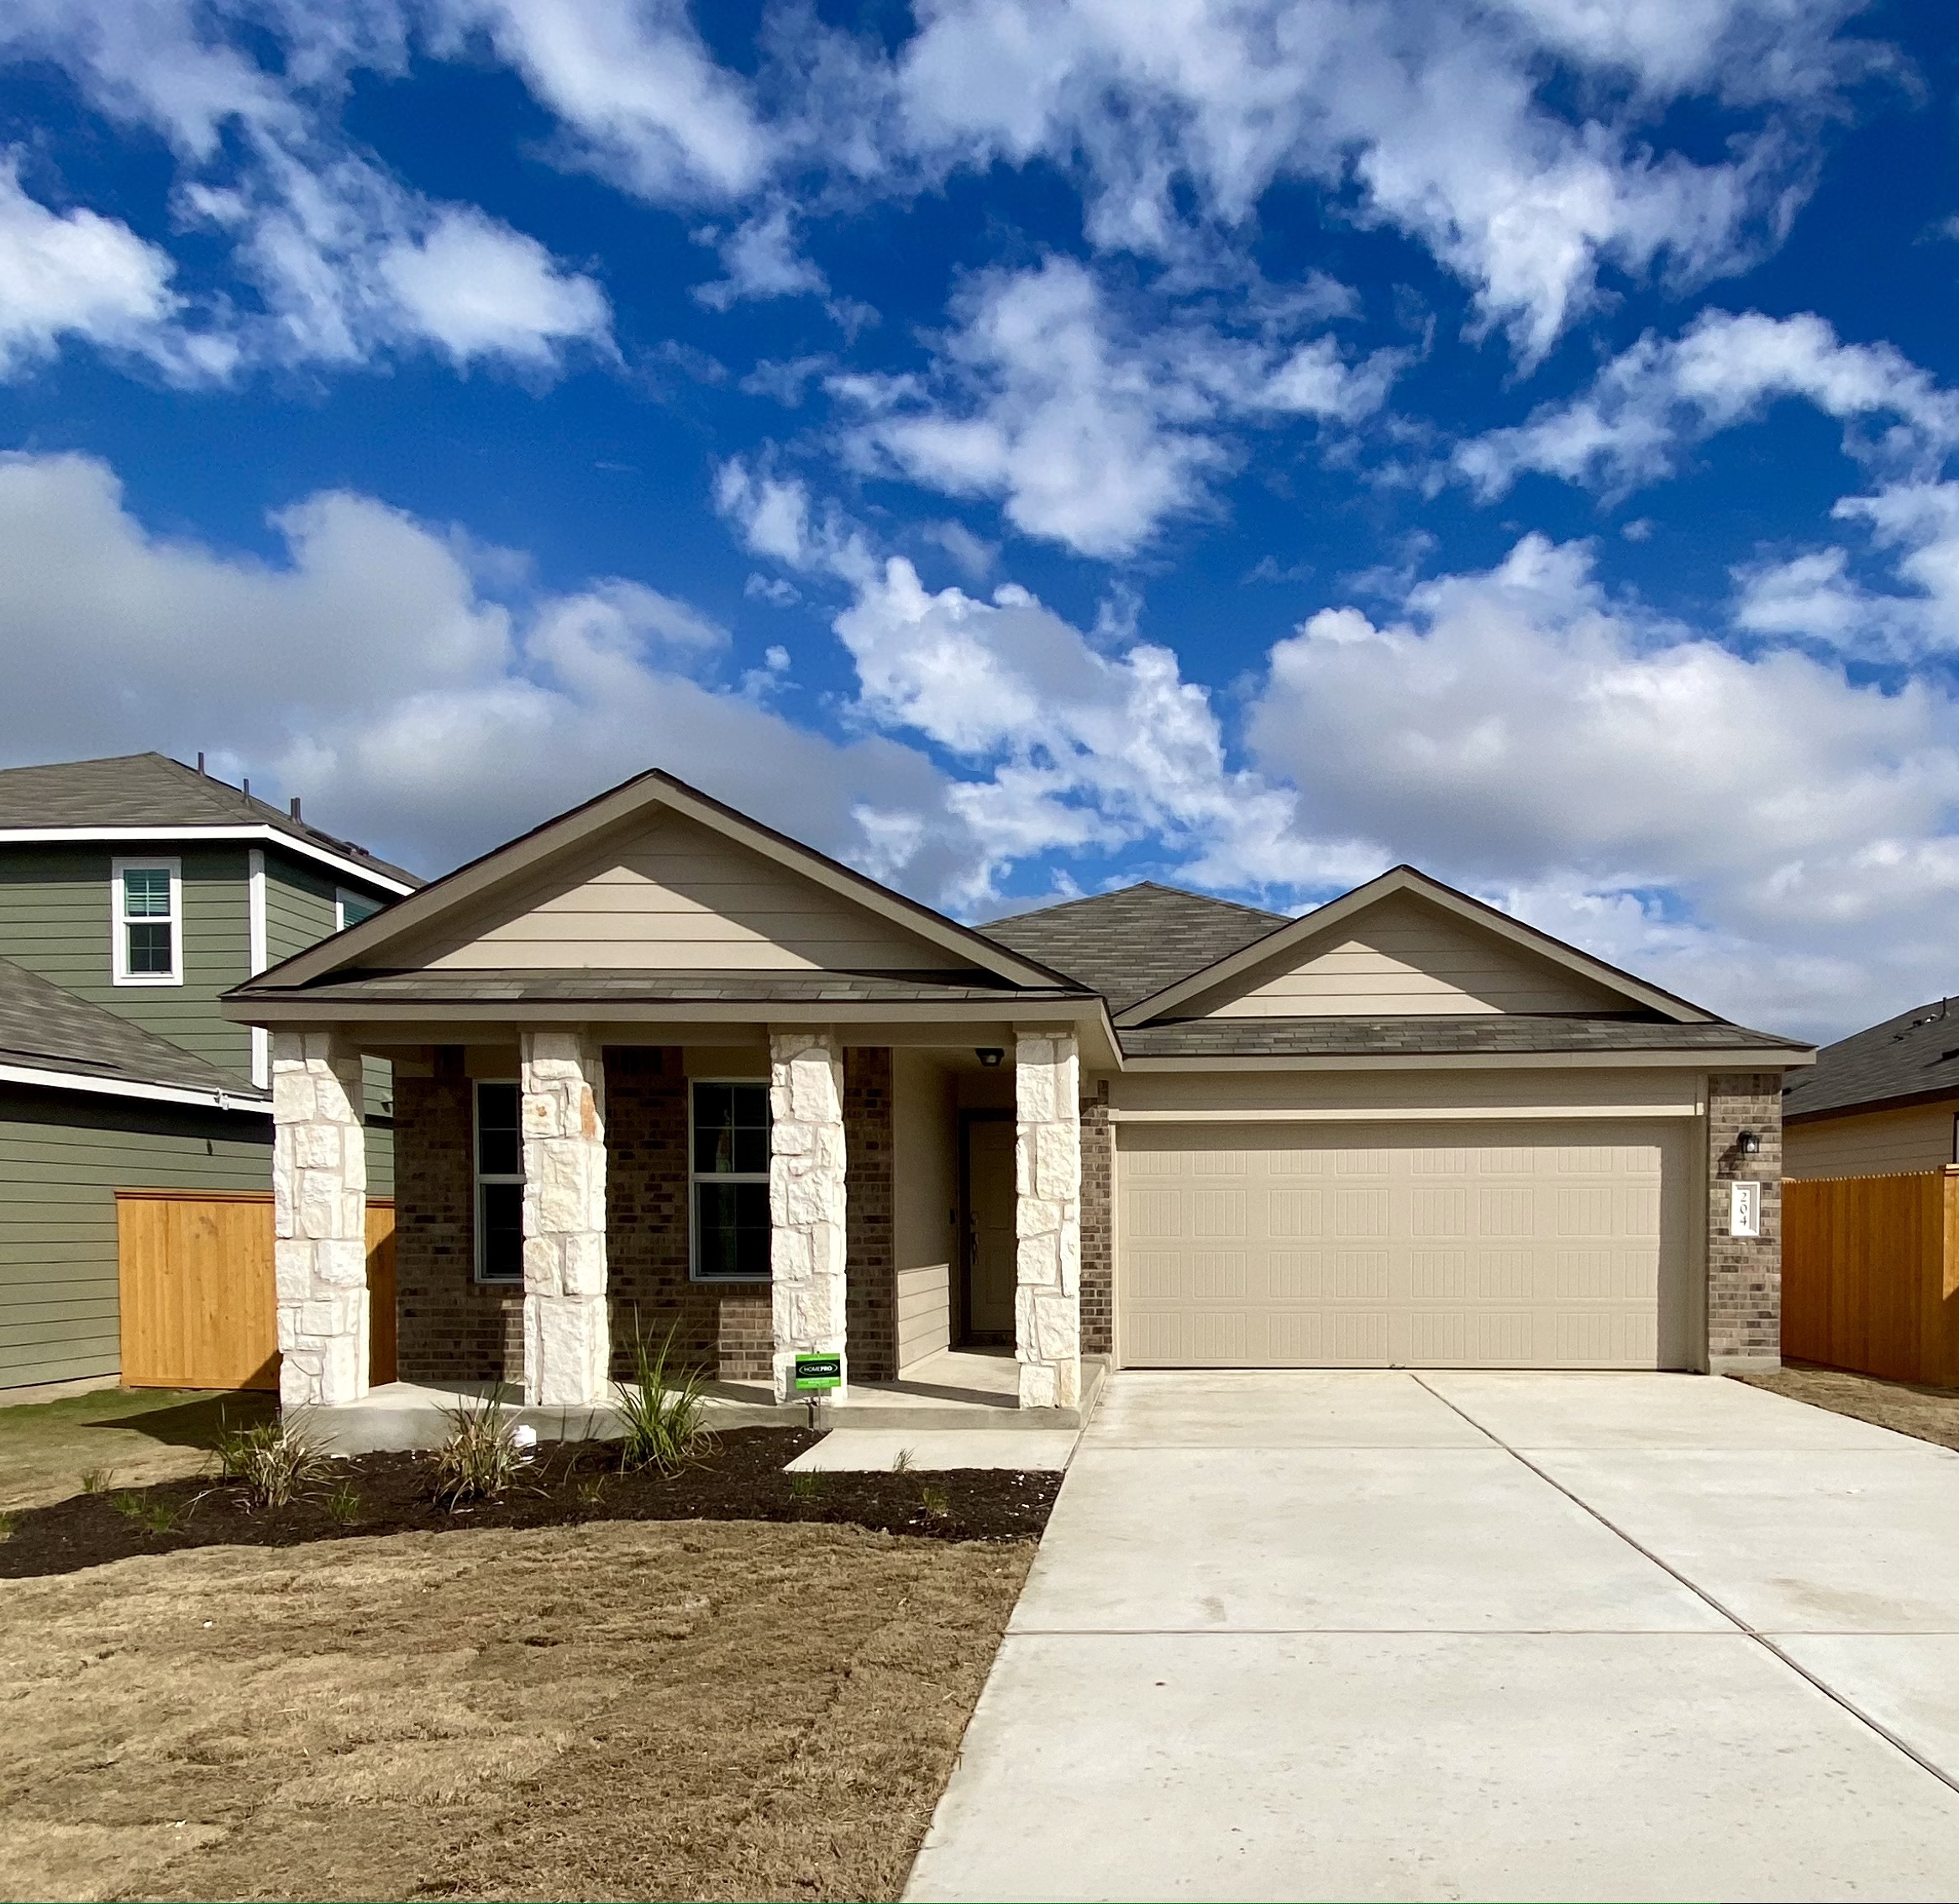 Brand New 3 bedroom 2 bath home in Bailey Park